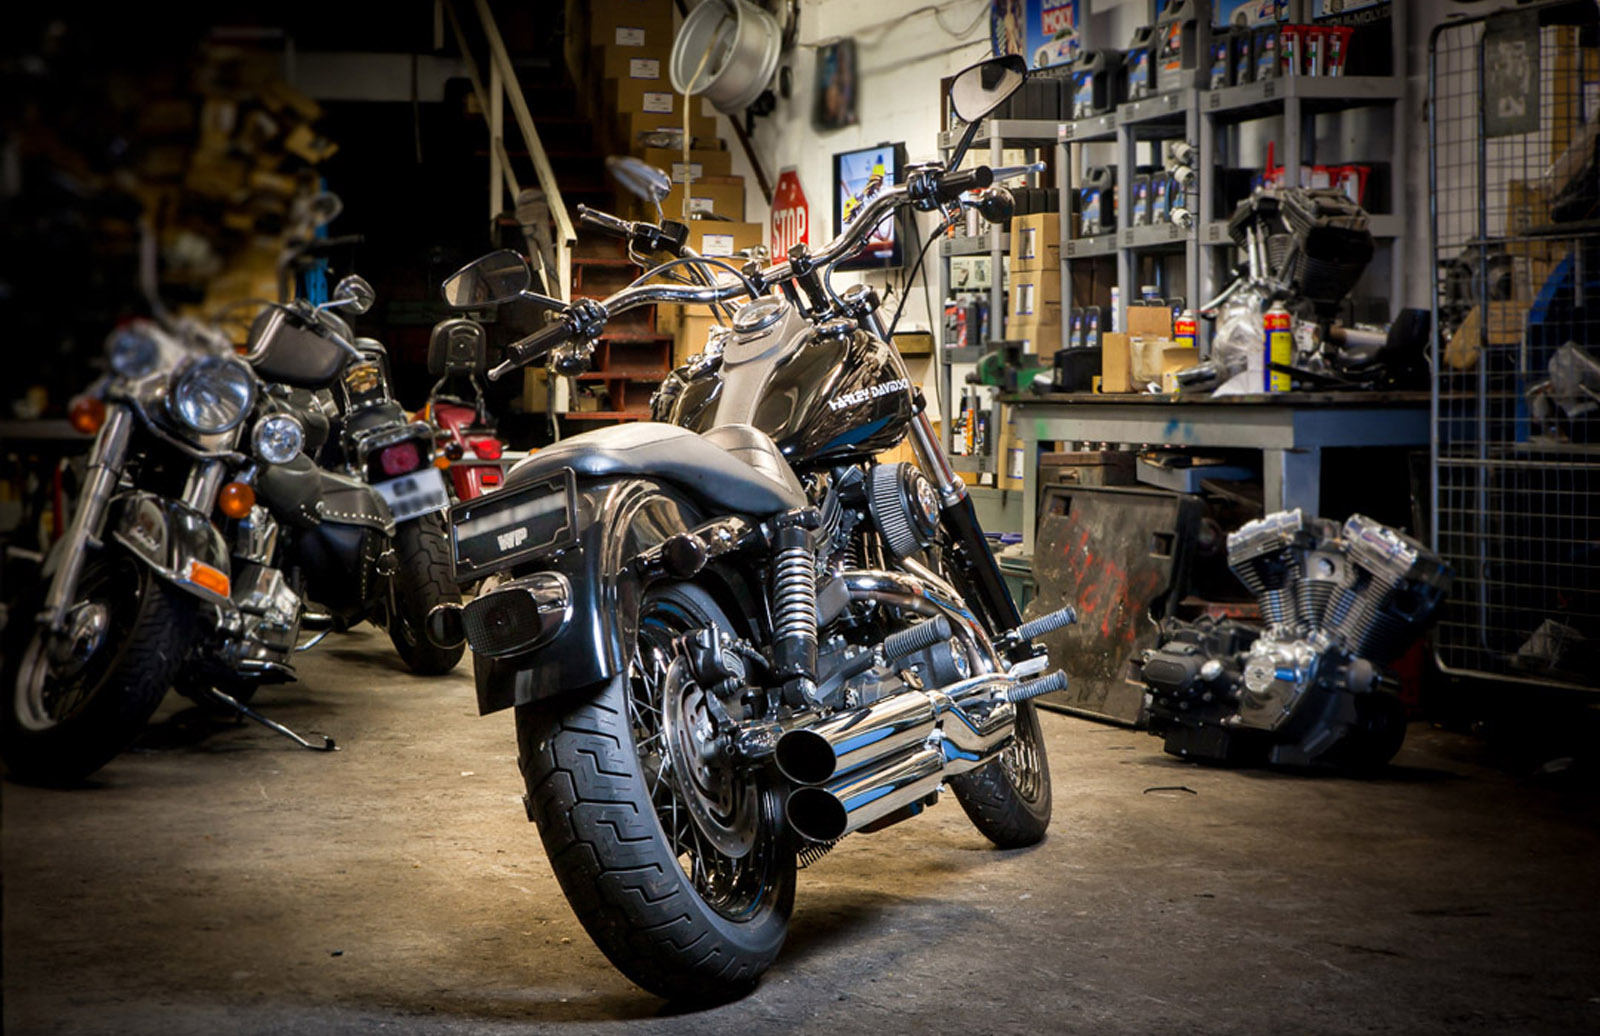 Customize your Harley the way you like it with Genuine Harley-Davidson new and used parts